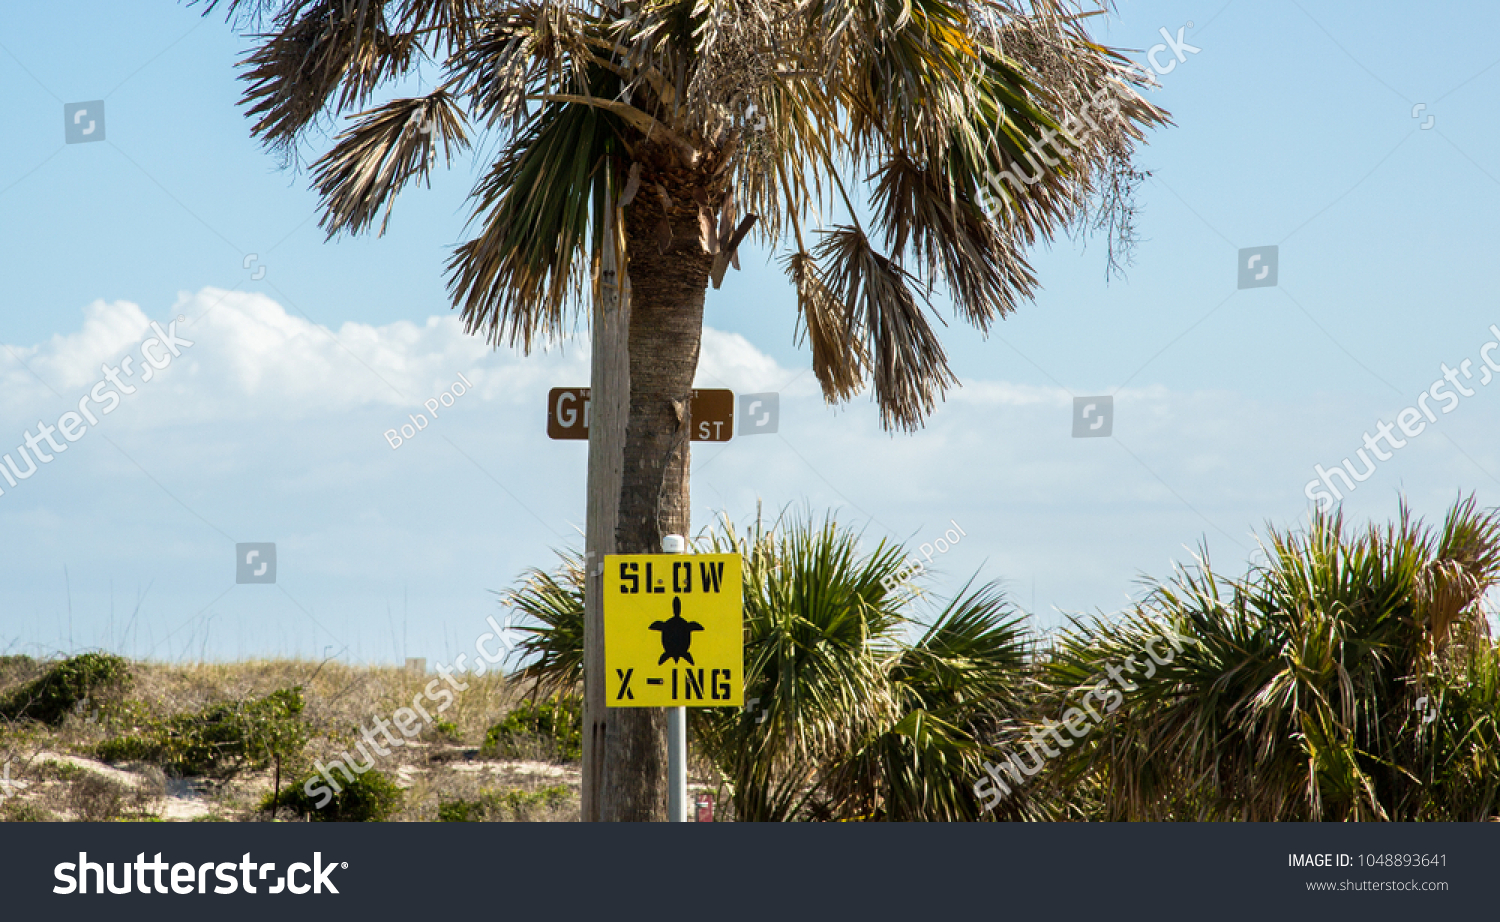 Slow Turtle Crossing >> Slow Turtle Crossing Sign Near Beach Stock Photo Edit Now 1048893641